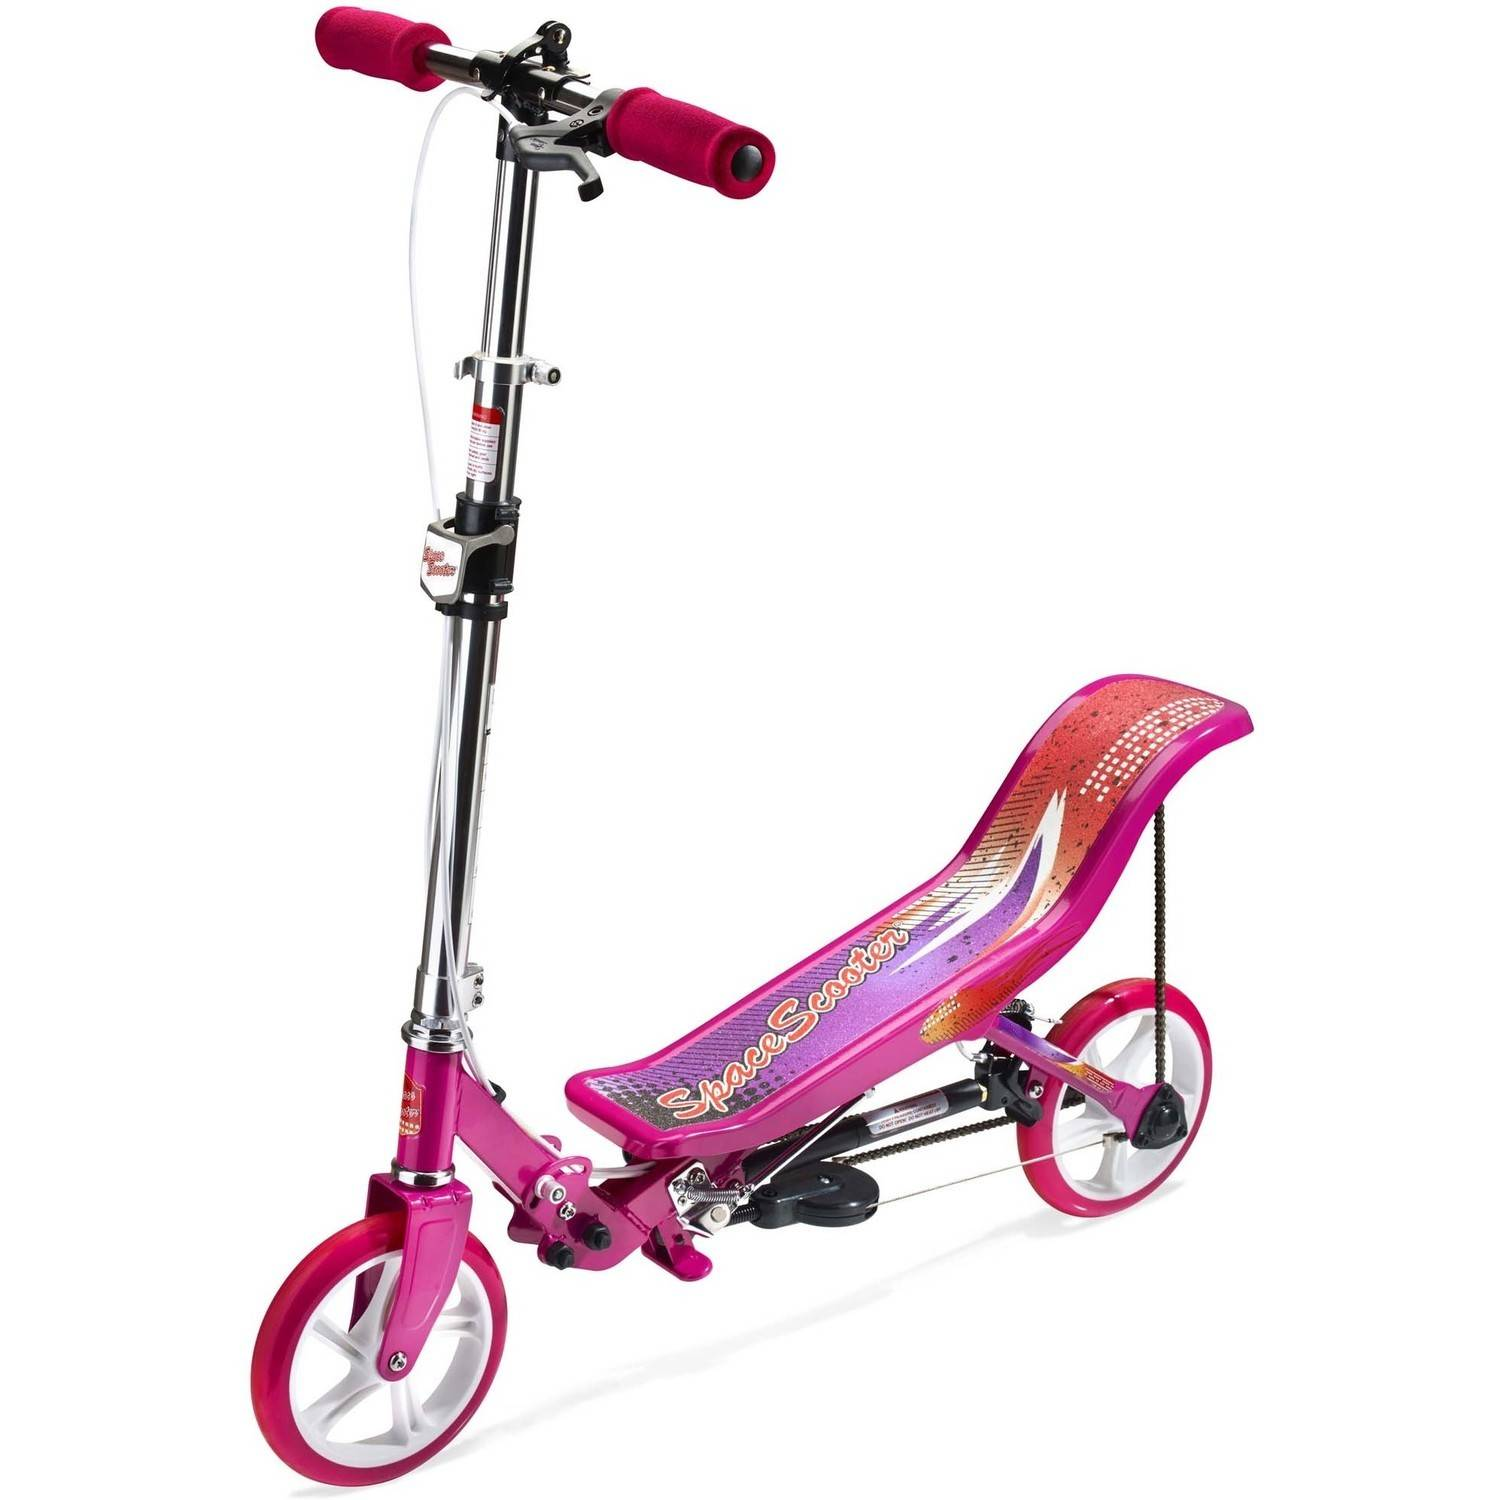 Space Scooter X580, Regular, Pink by Space Scooter